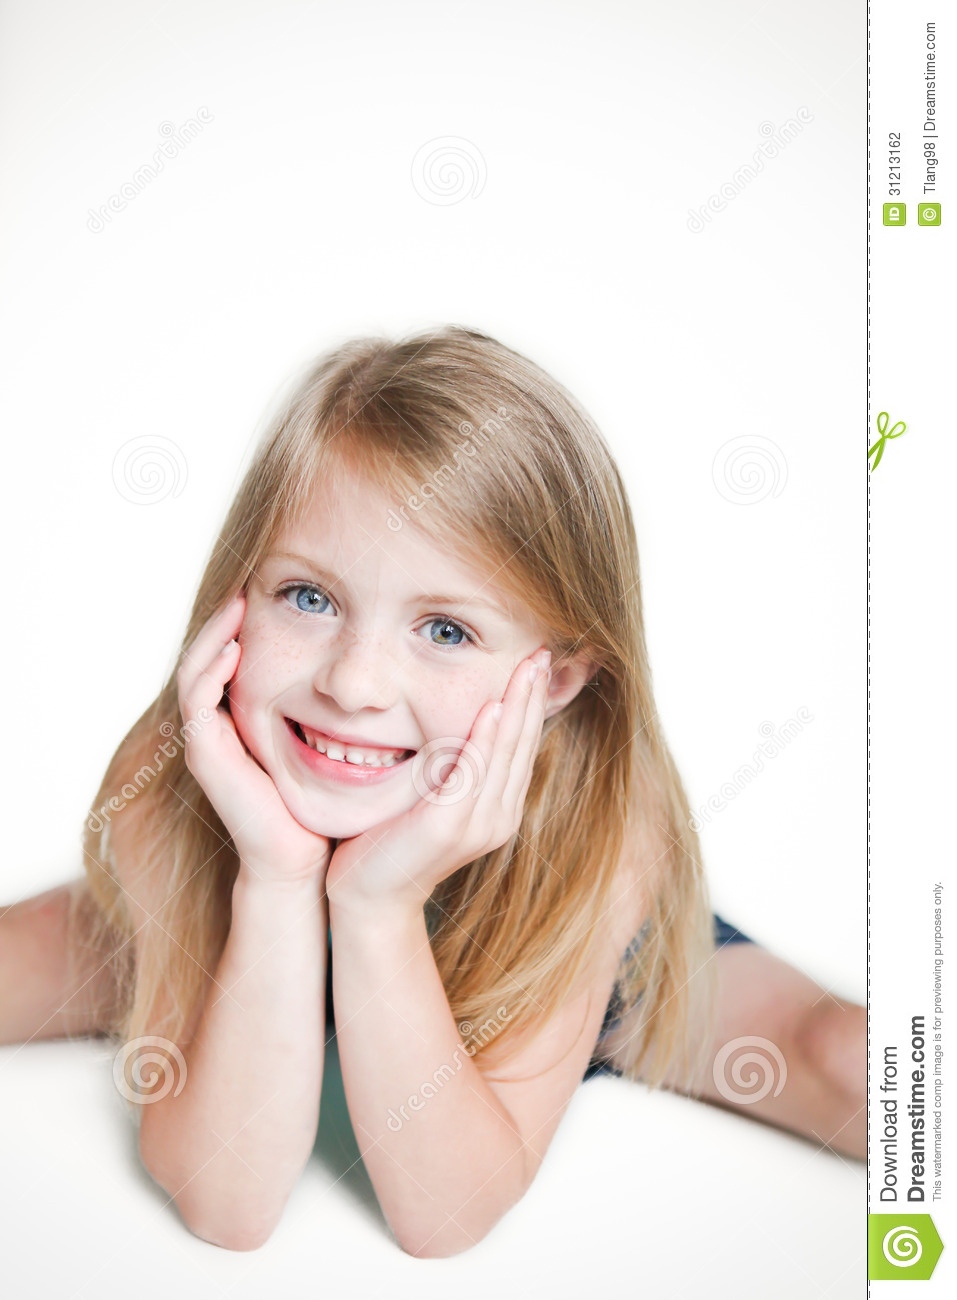 Cute Little Girl Smiling Stock Photography Image 31213162